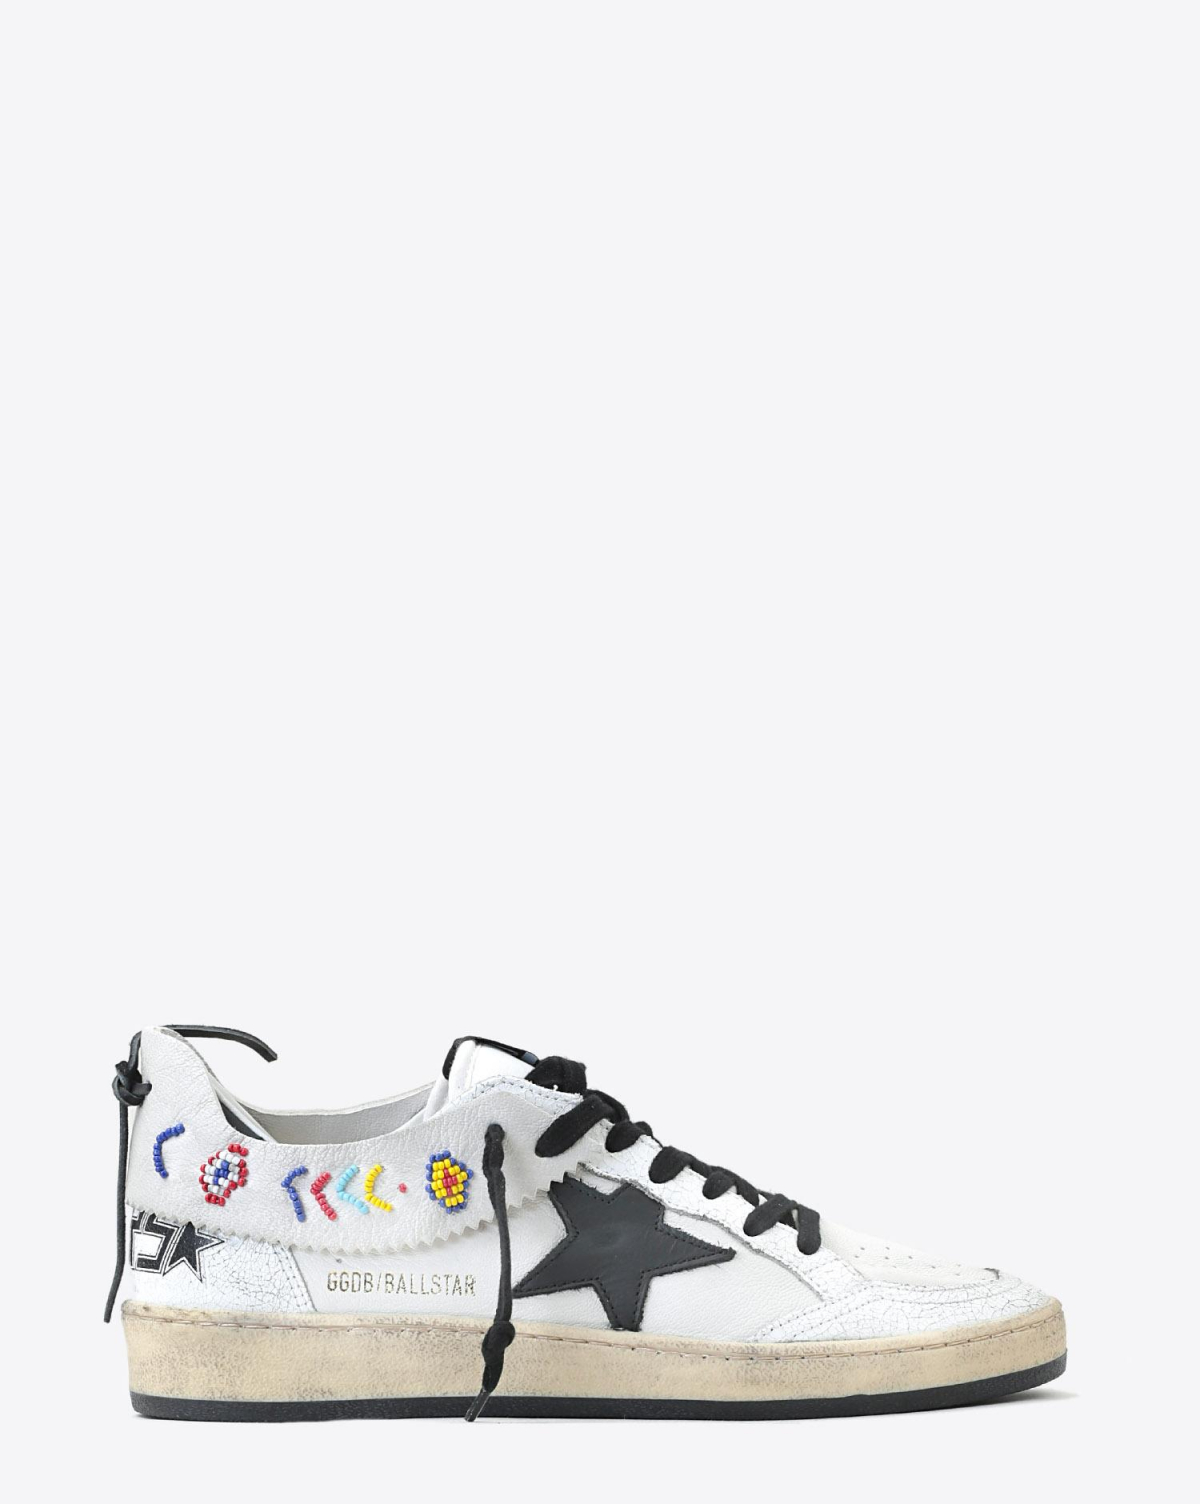 Golden Goose Woman Pré-Collection Sneakers Ball Star - White Leather - Beads